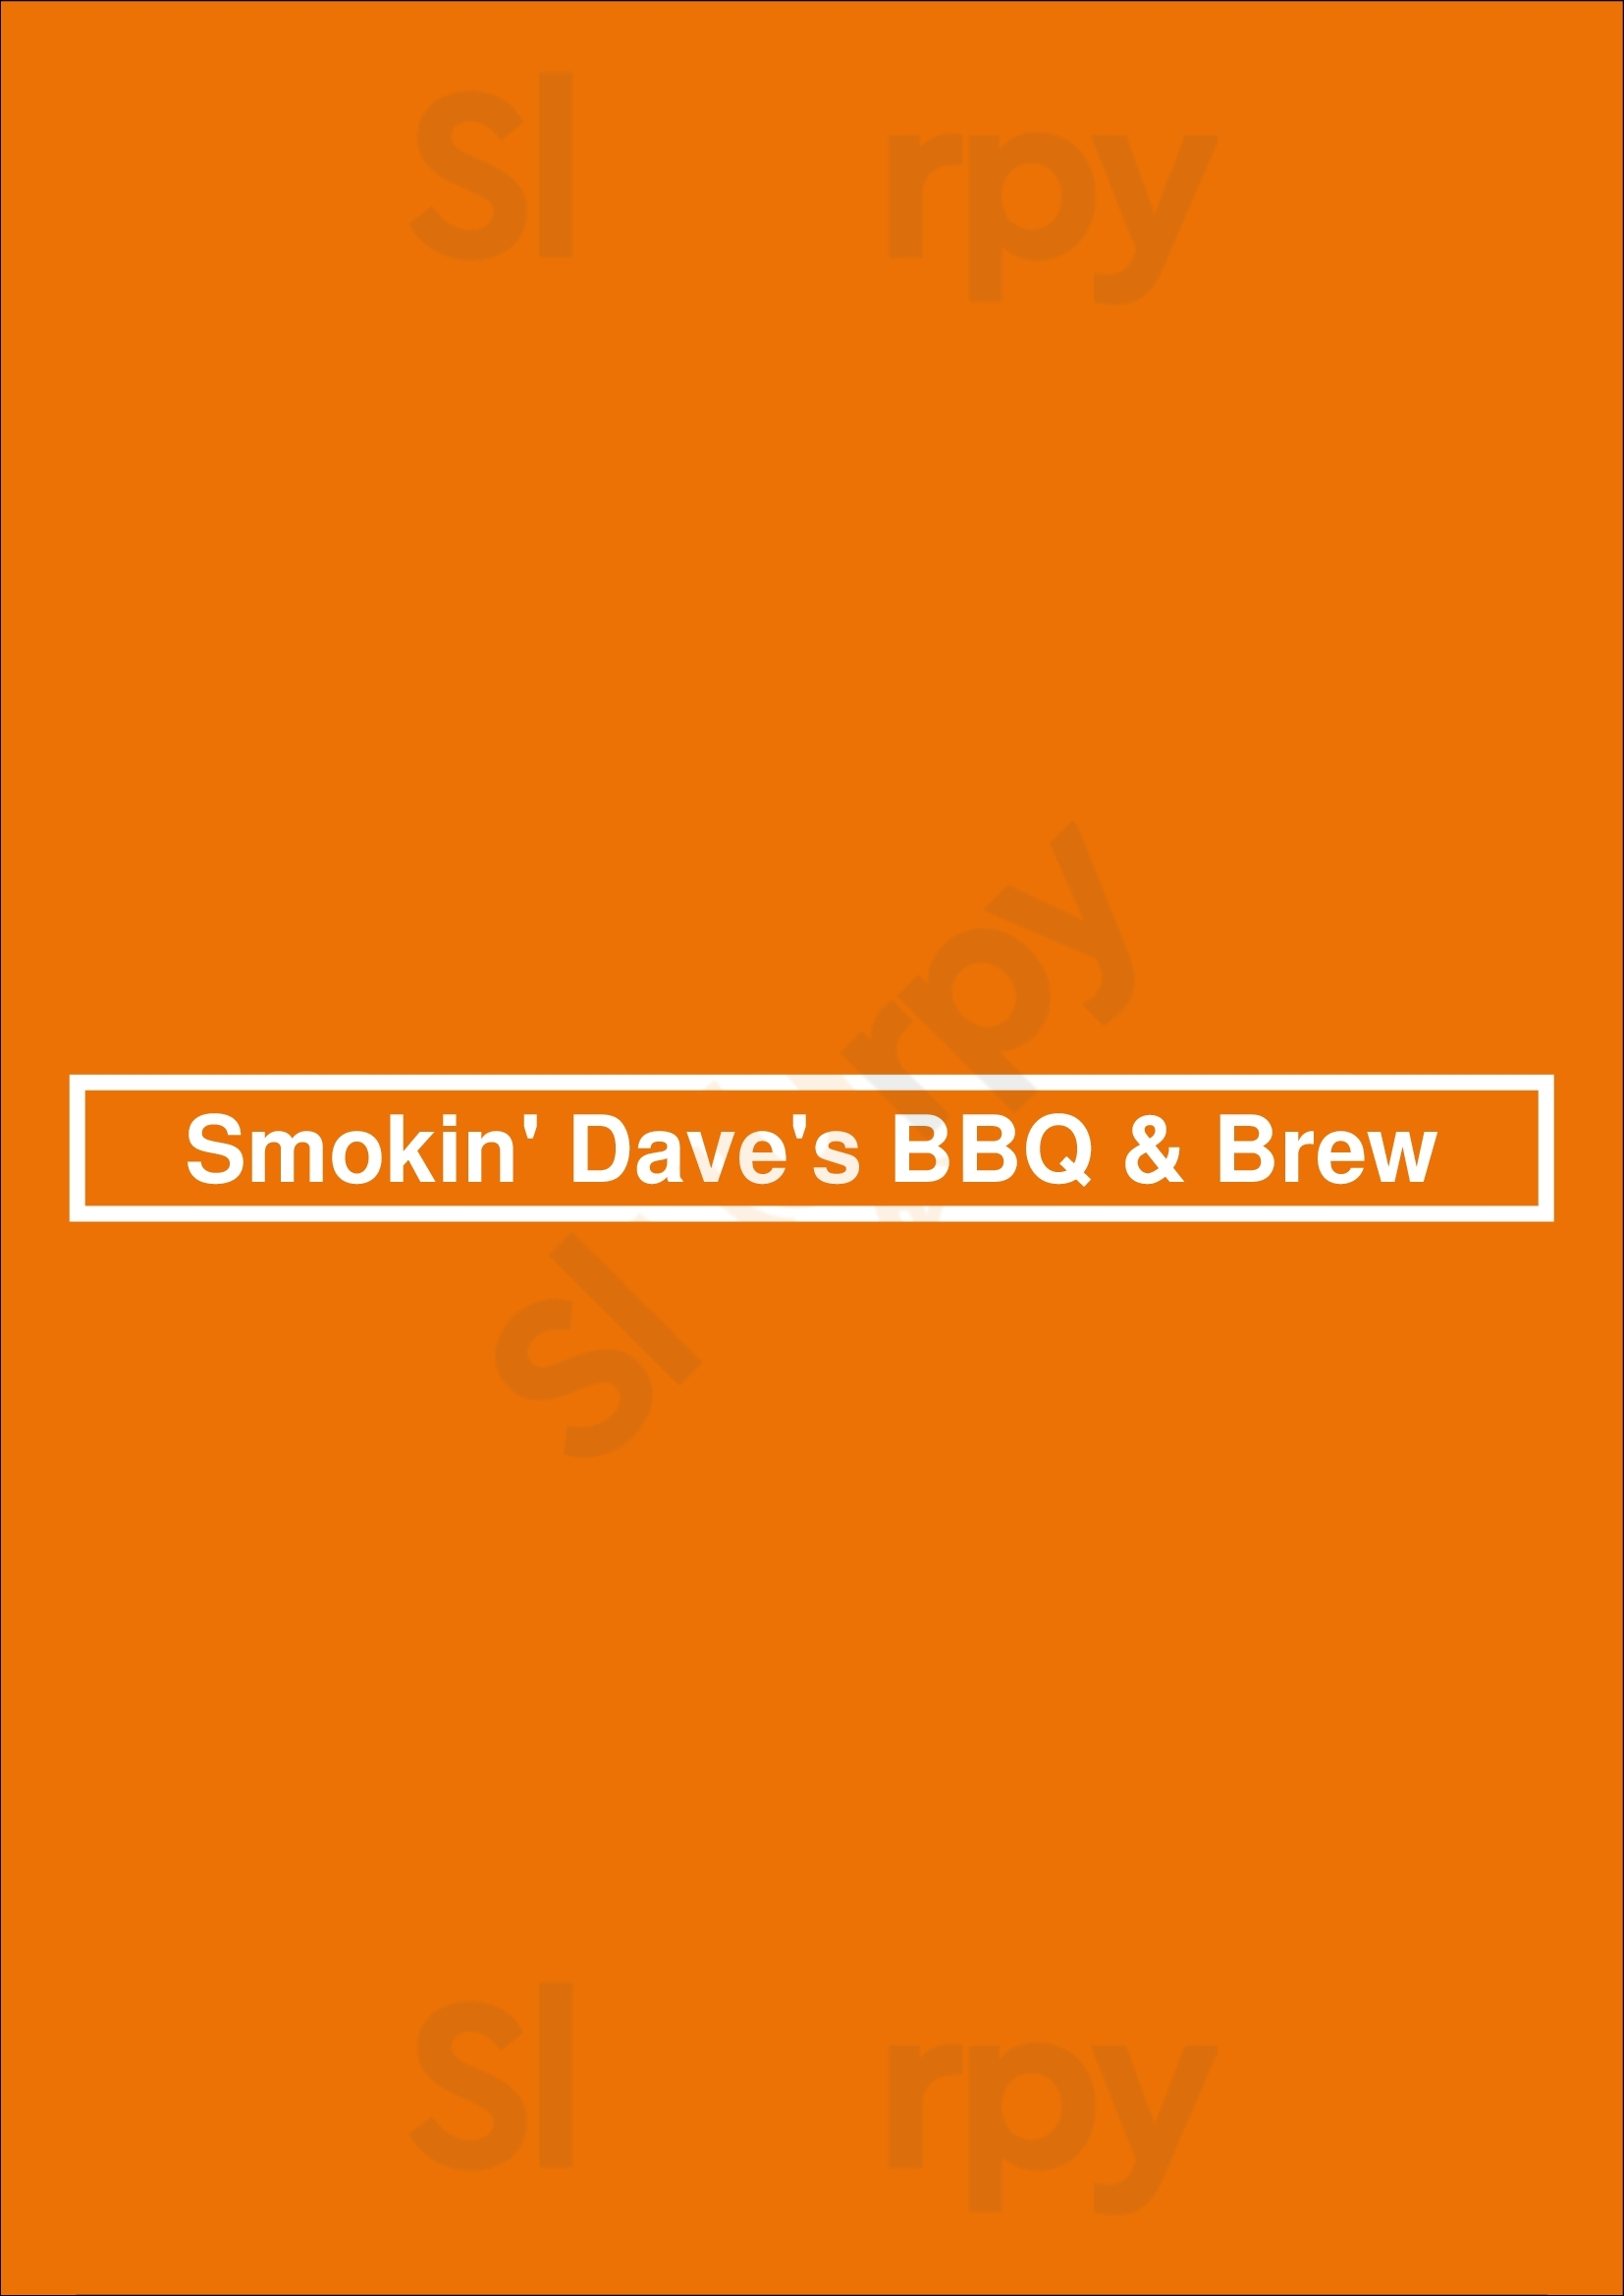 Smokin' Dave's Bbq & Brew Denver Menu - 1